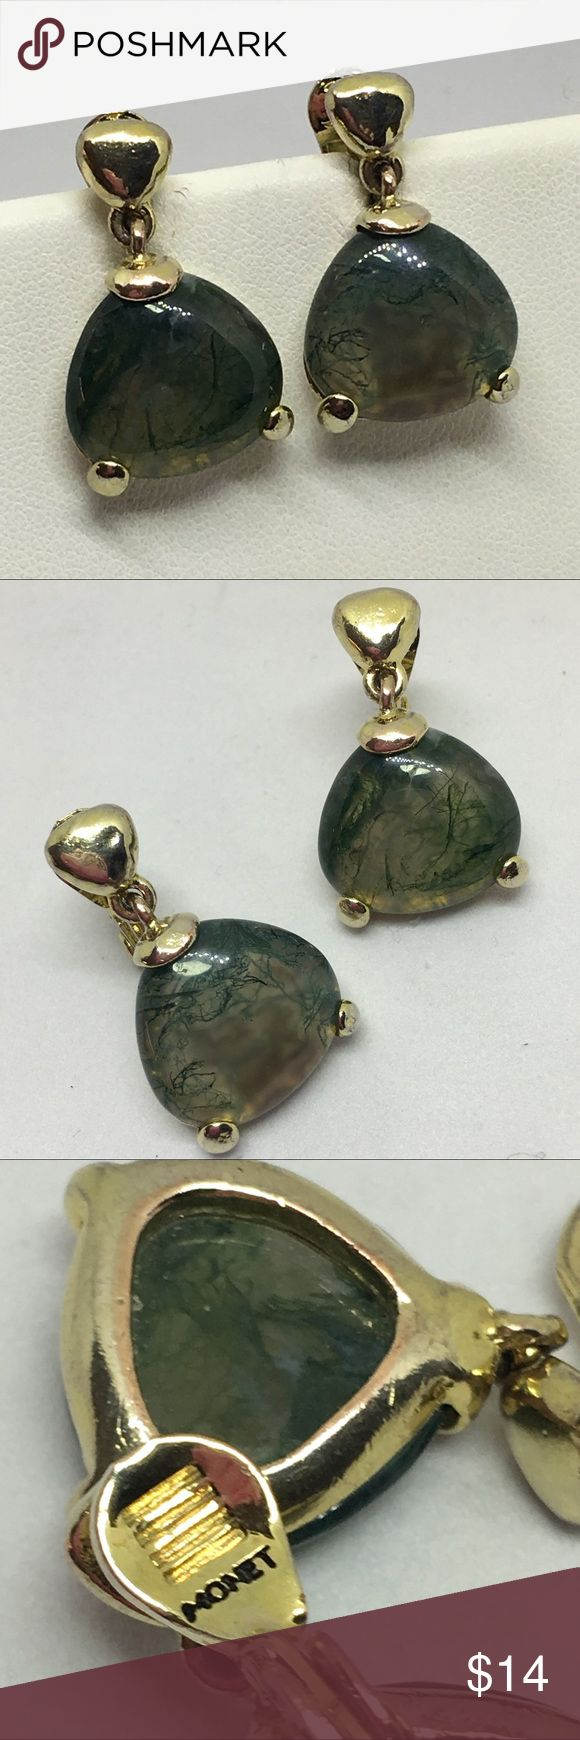 """Vintage Monet Gold & Moss Agate Clip Earrings Very Vintage Monet earrings, which can be told by the dark """"Monet"""" marking on the reverse of the earrings as shown. These are in gold and Genuine Moss Agate; beautiful and remarkable for a costume jewelry company to use genuine semi-precious stones! These are definitely a rare find and a must for any collector! In excellent vintage condition; some minor loss of plating but otherwise just lovely!! Vintage Jewelry Earrings"""